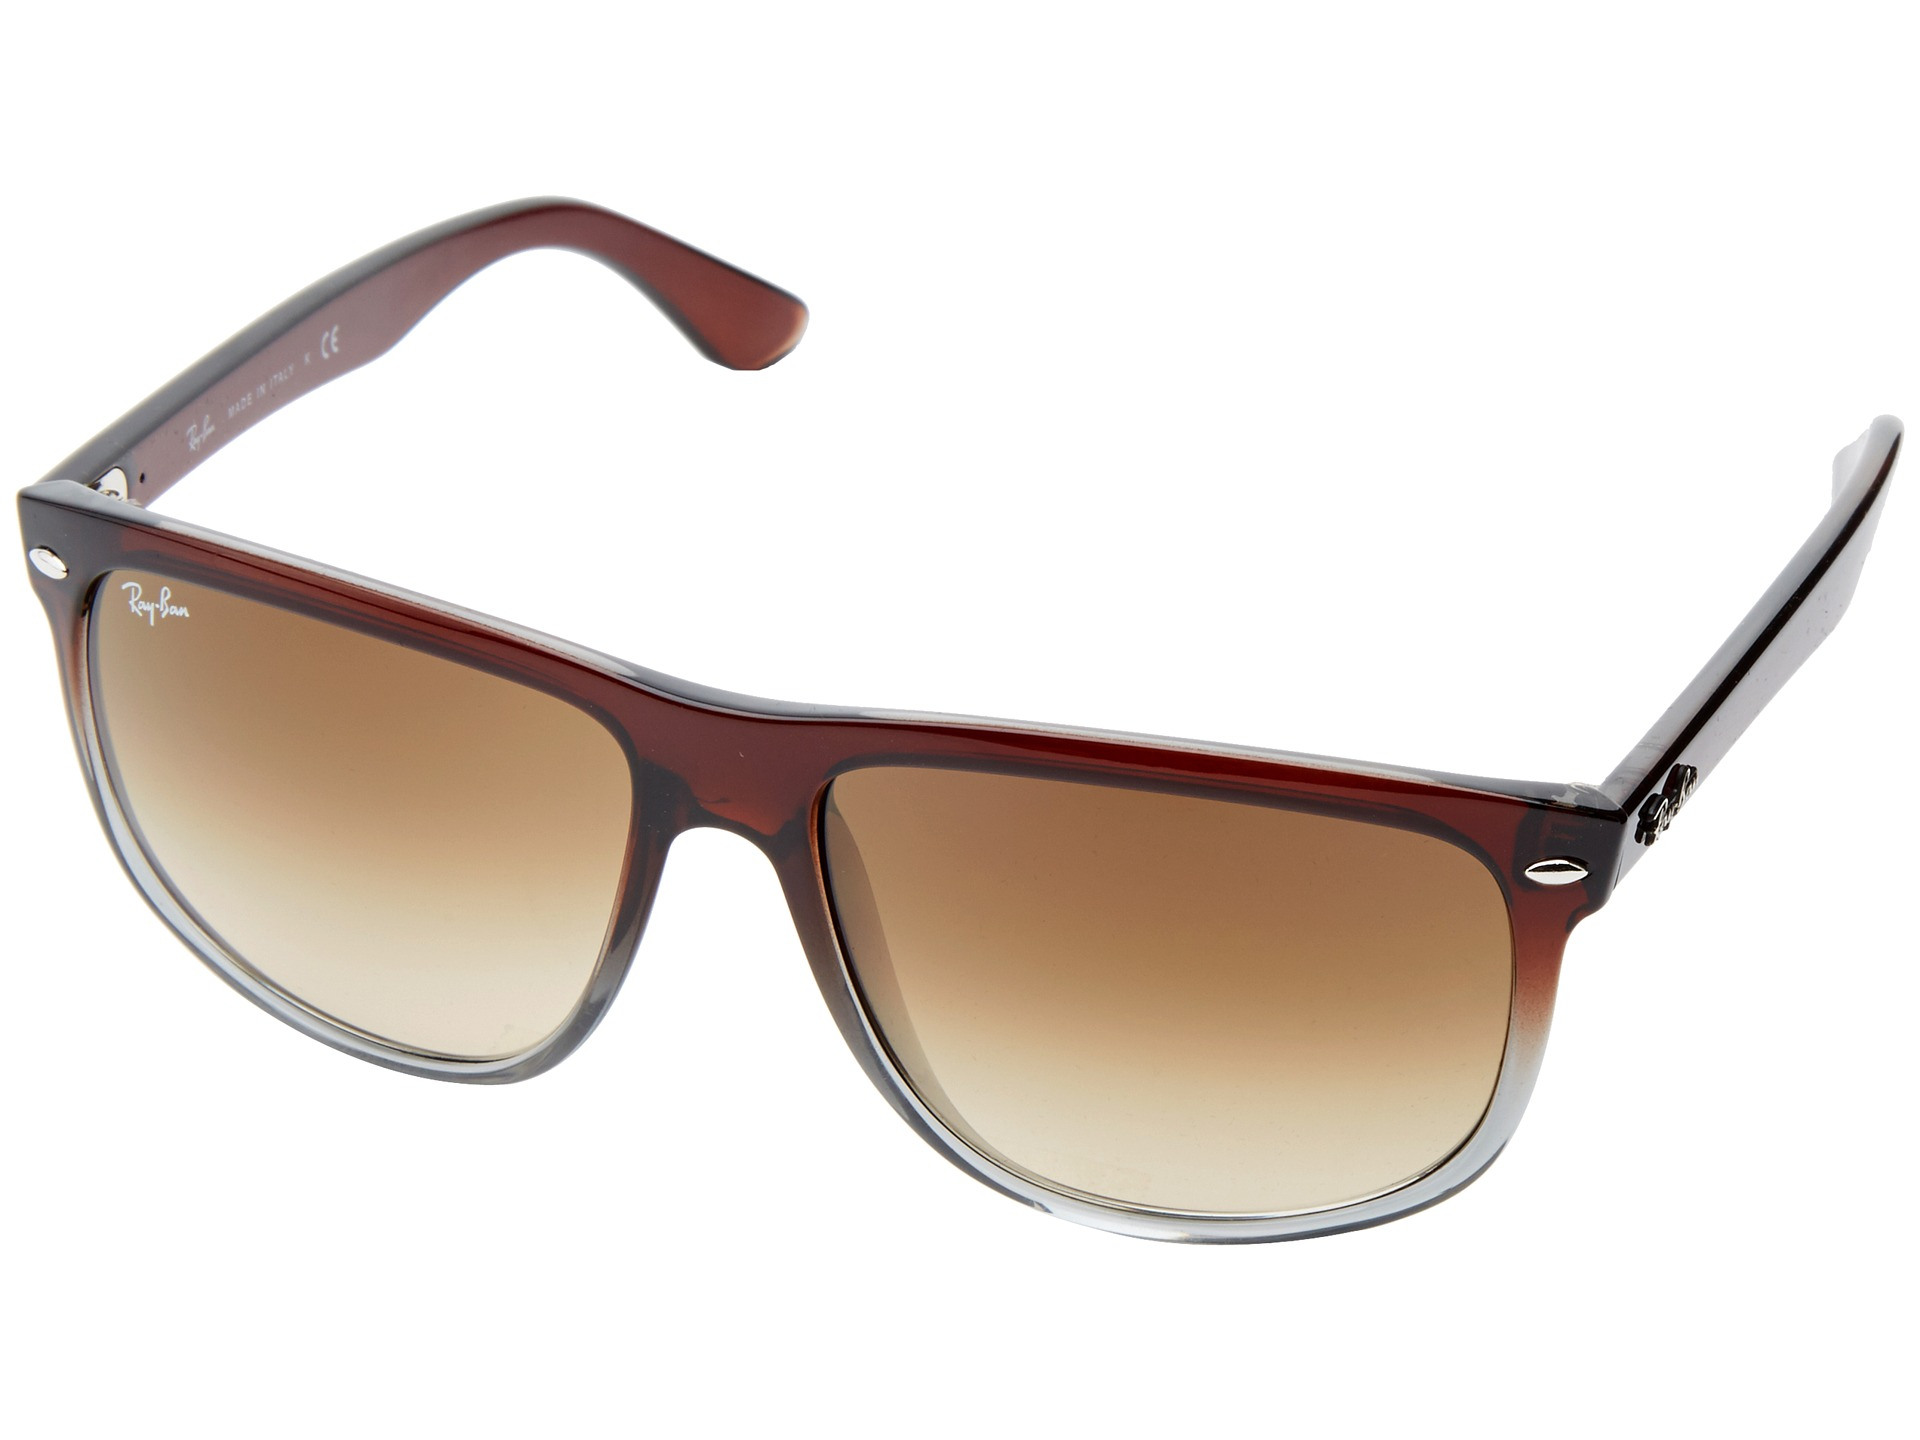 bdd8ea45803 Ray Ban Boyfriend Sunglasses Review « Heritage Malta